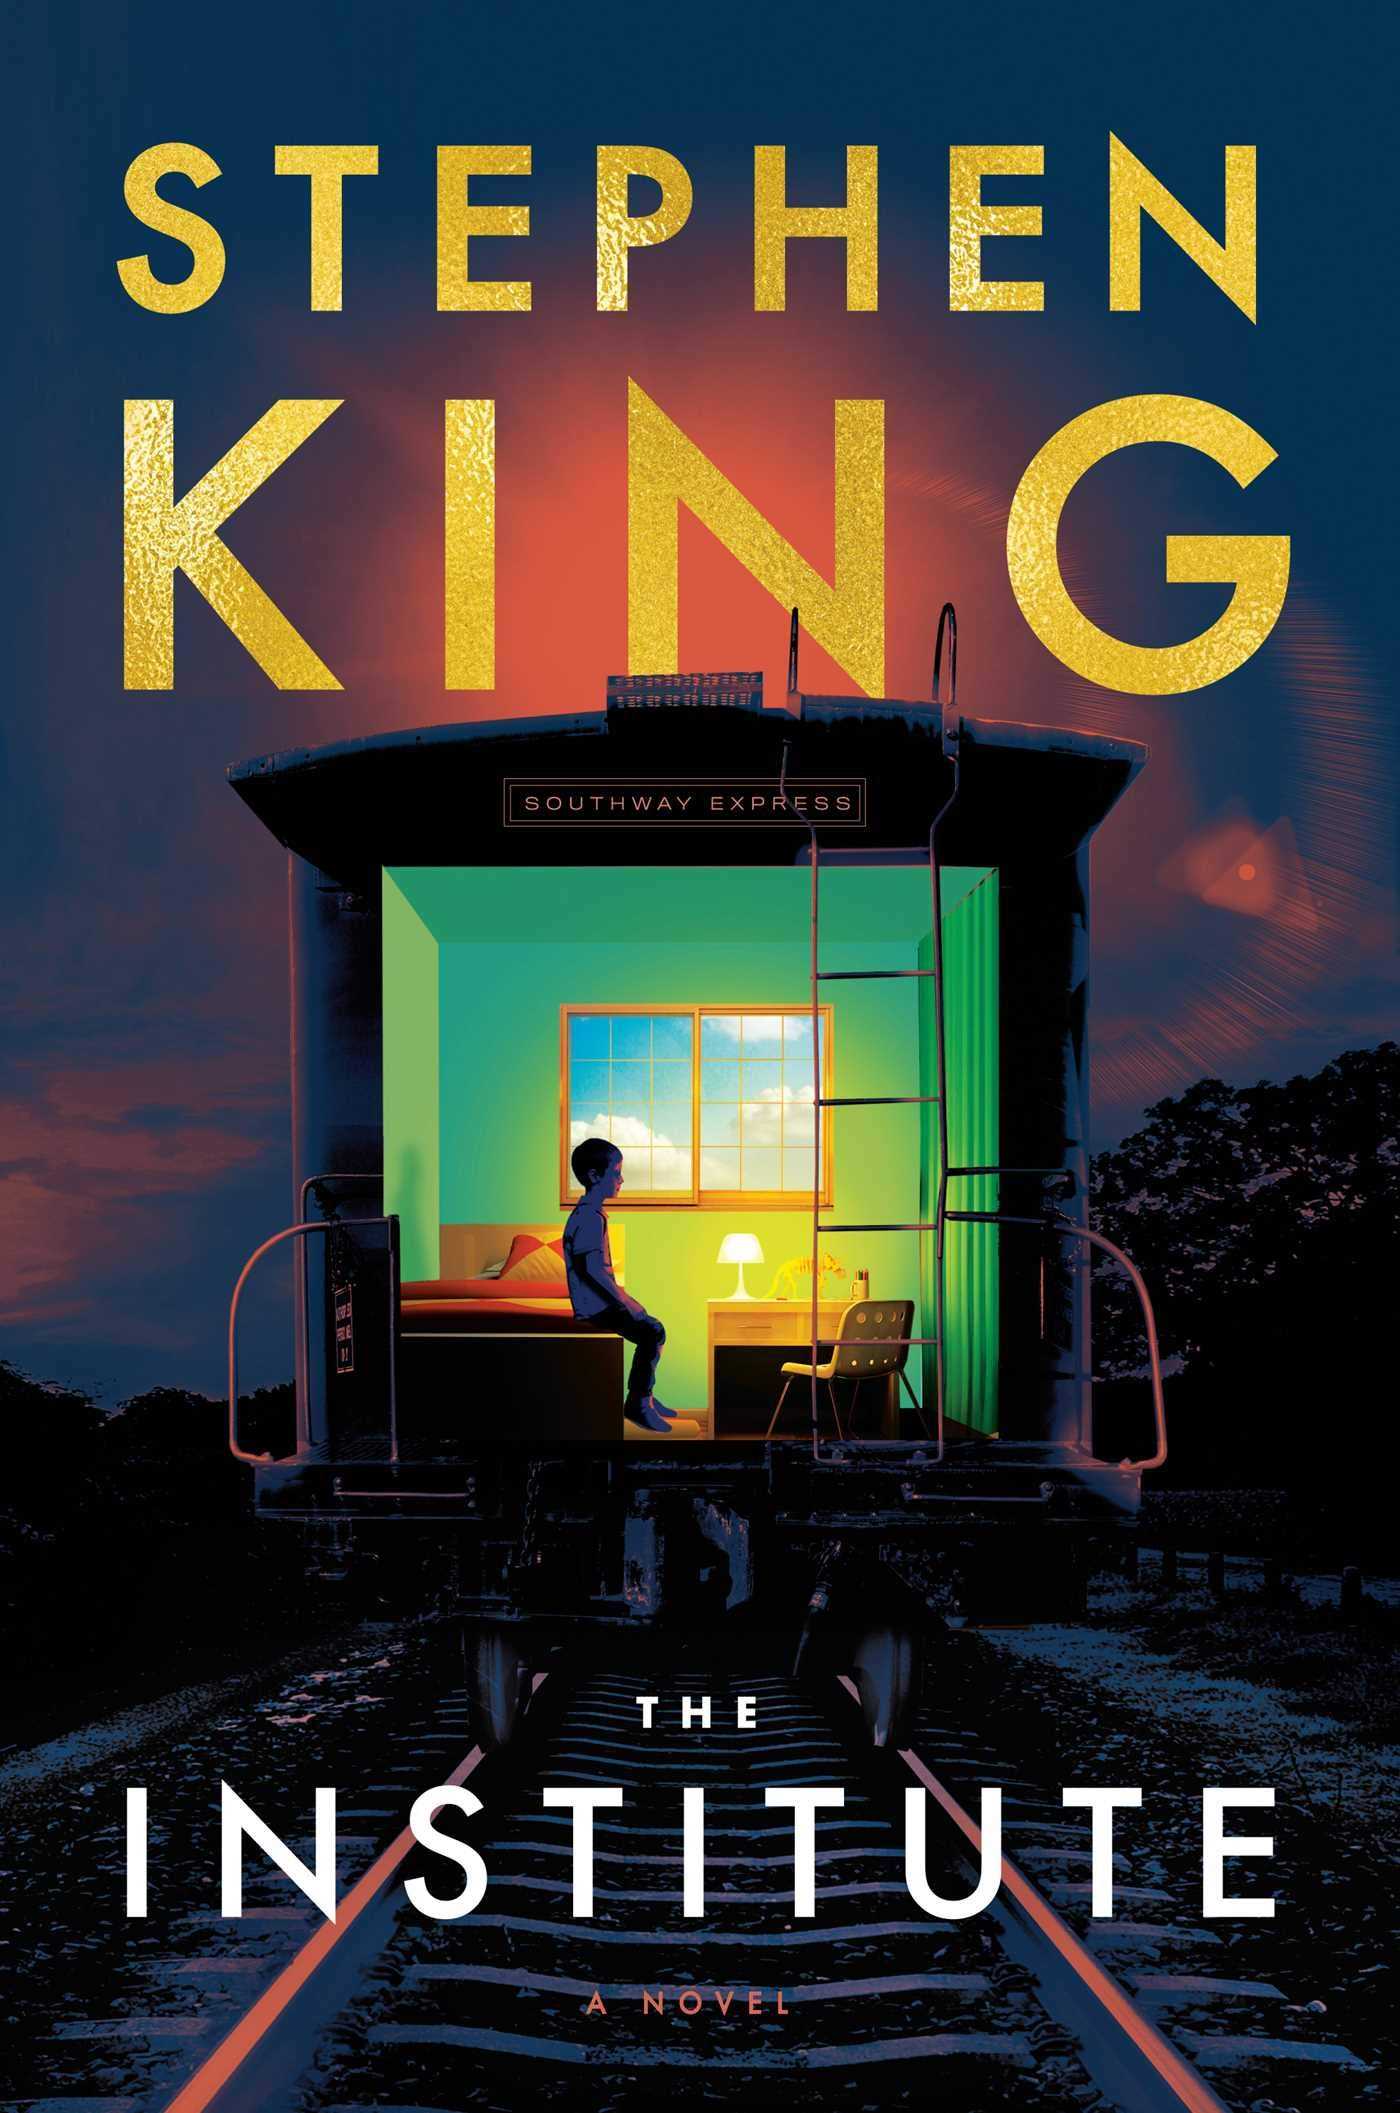 Friday Reads: The Institute by Stephen King